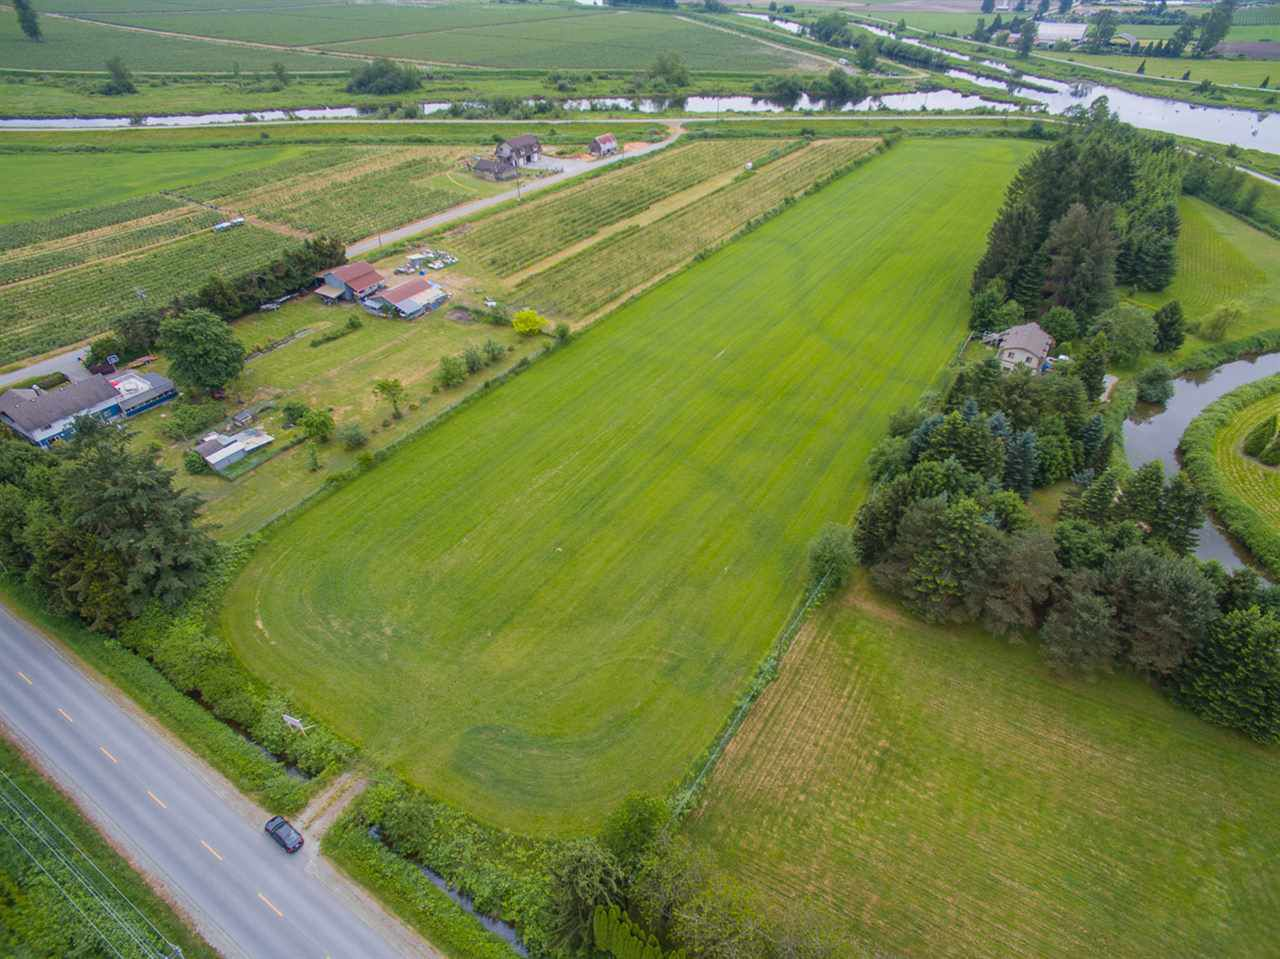 Main Photo: 19970 MCNEIL Road in Pitt Meadows: North Meadows PI Land for sale : MLS®# R2141120